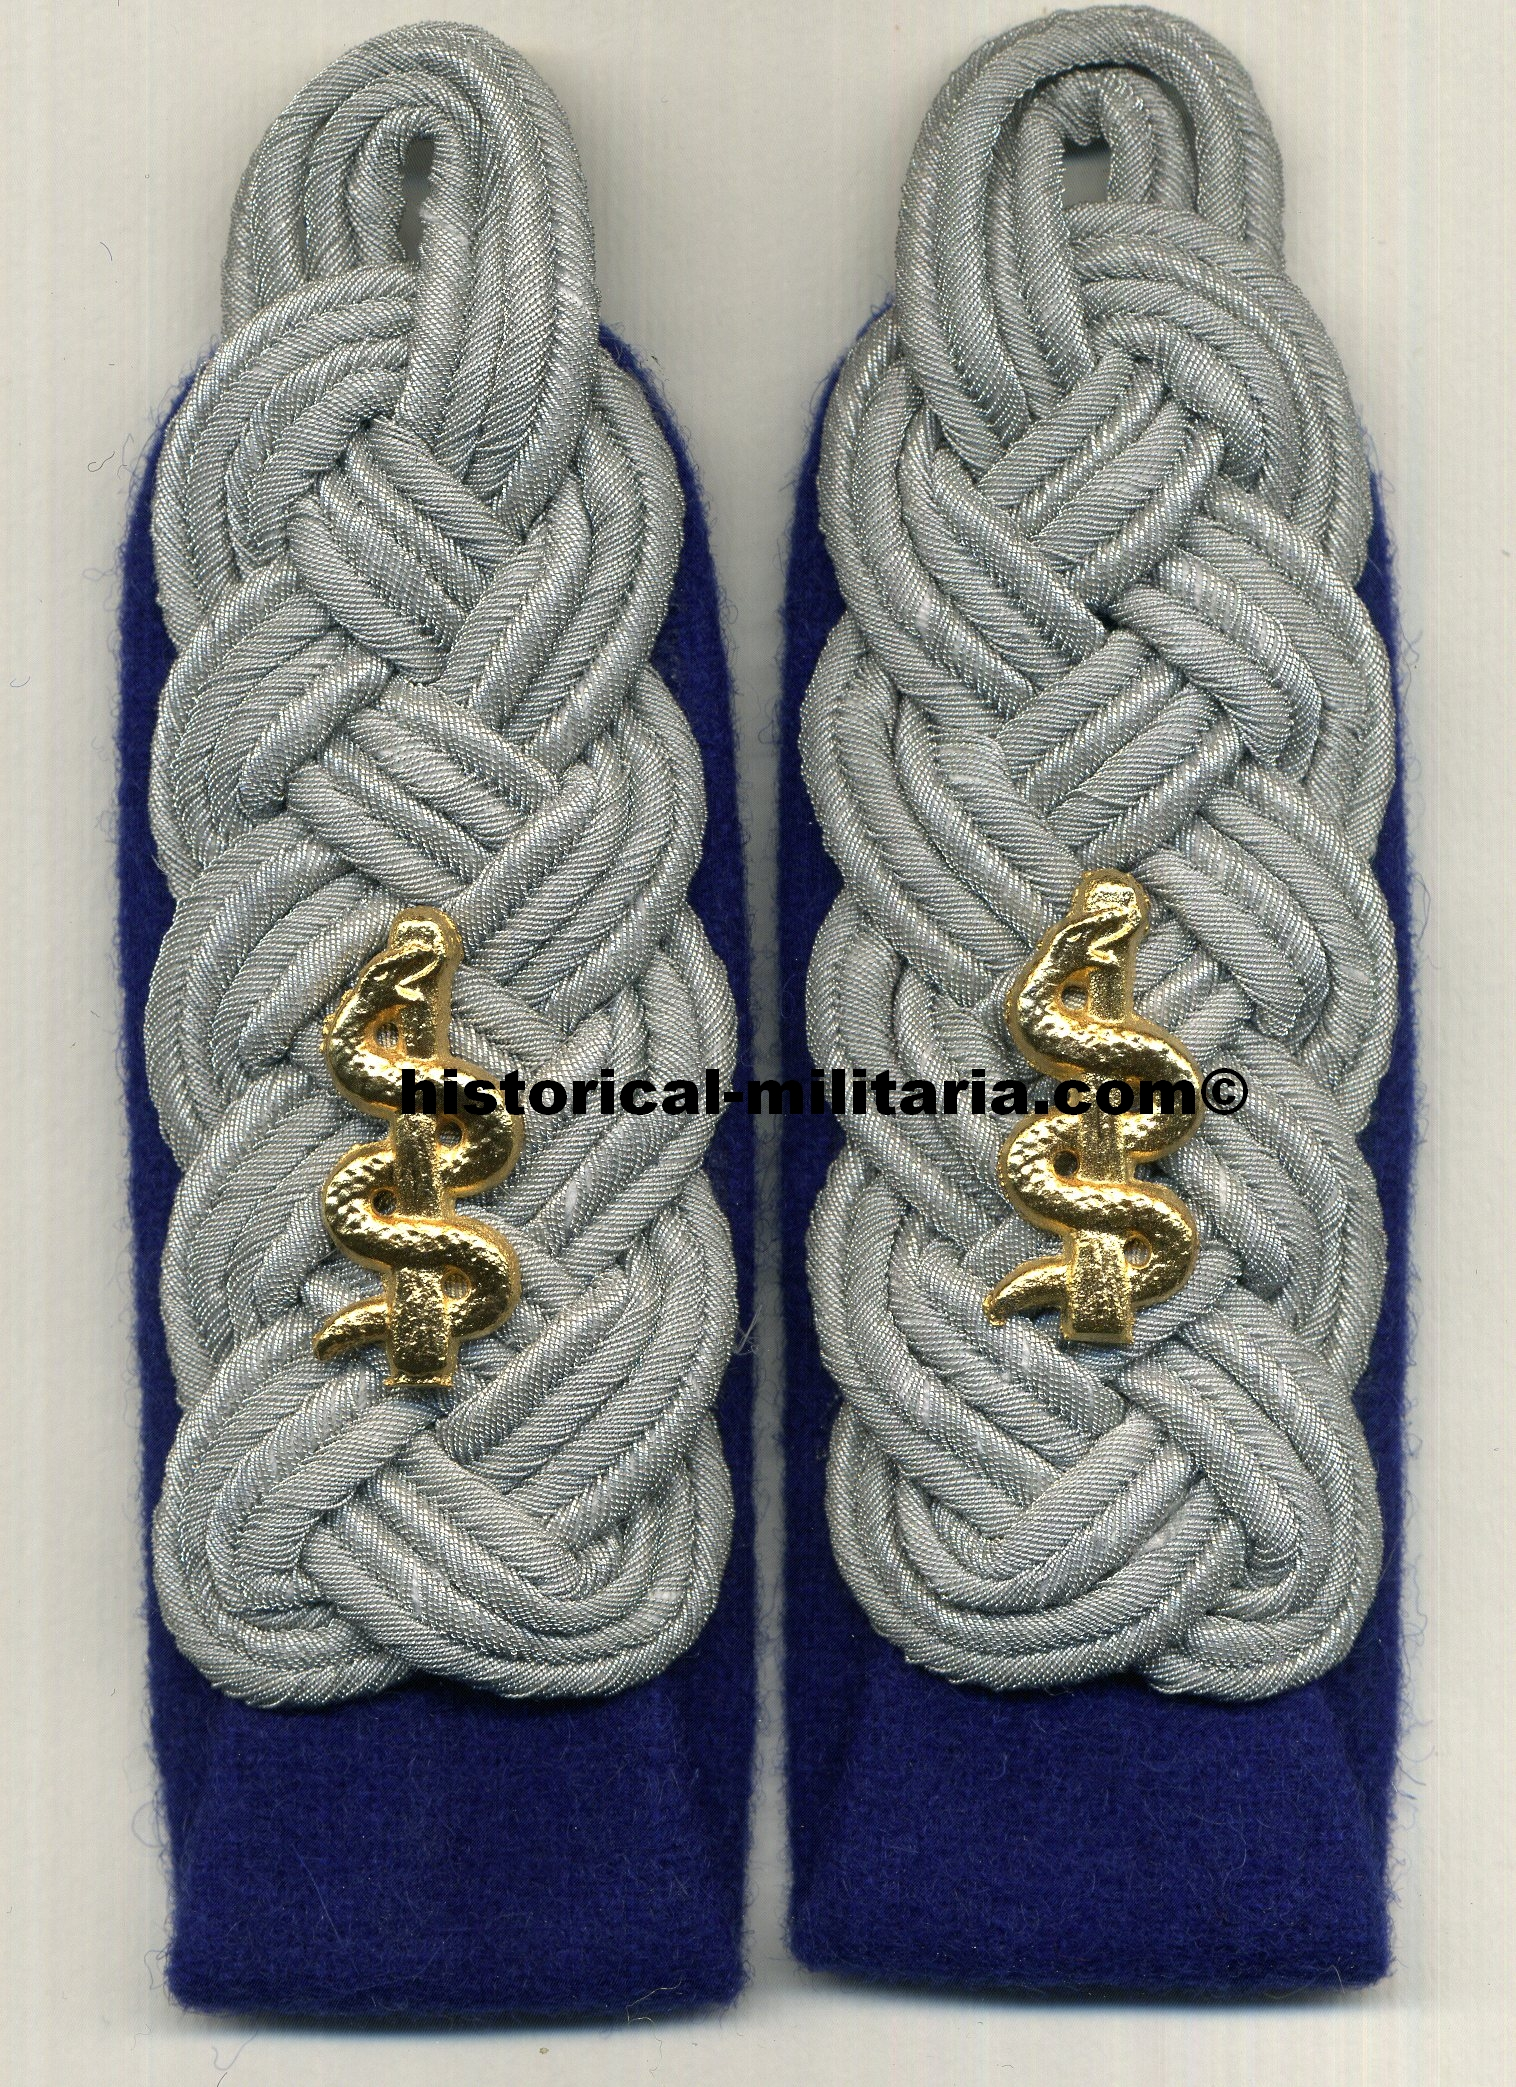 Luftwaffe Oberstabsarzt Major sew-in shoulder boards on cornflower blue backing with aesculapius cyphers - Major Schulterklappen zum einnähen mit Askulapstäben - spalline da Maggiore Sanità tedesca con degli esculapi